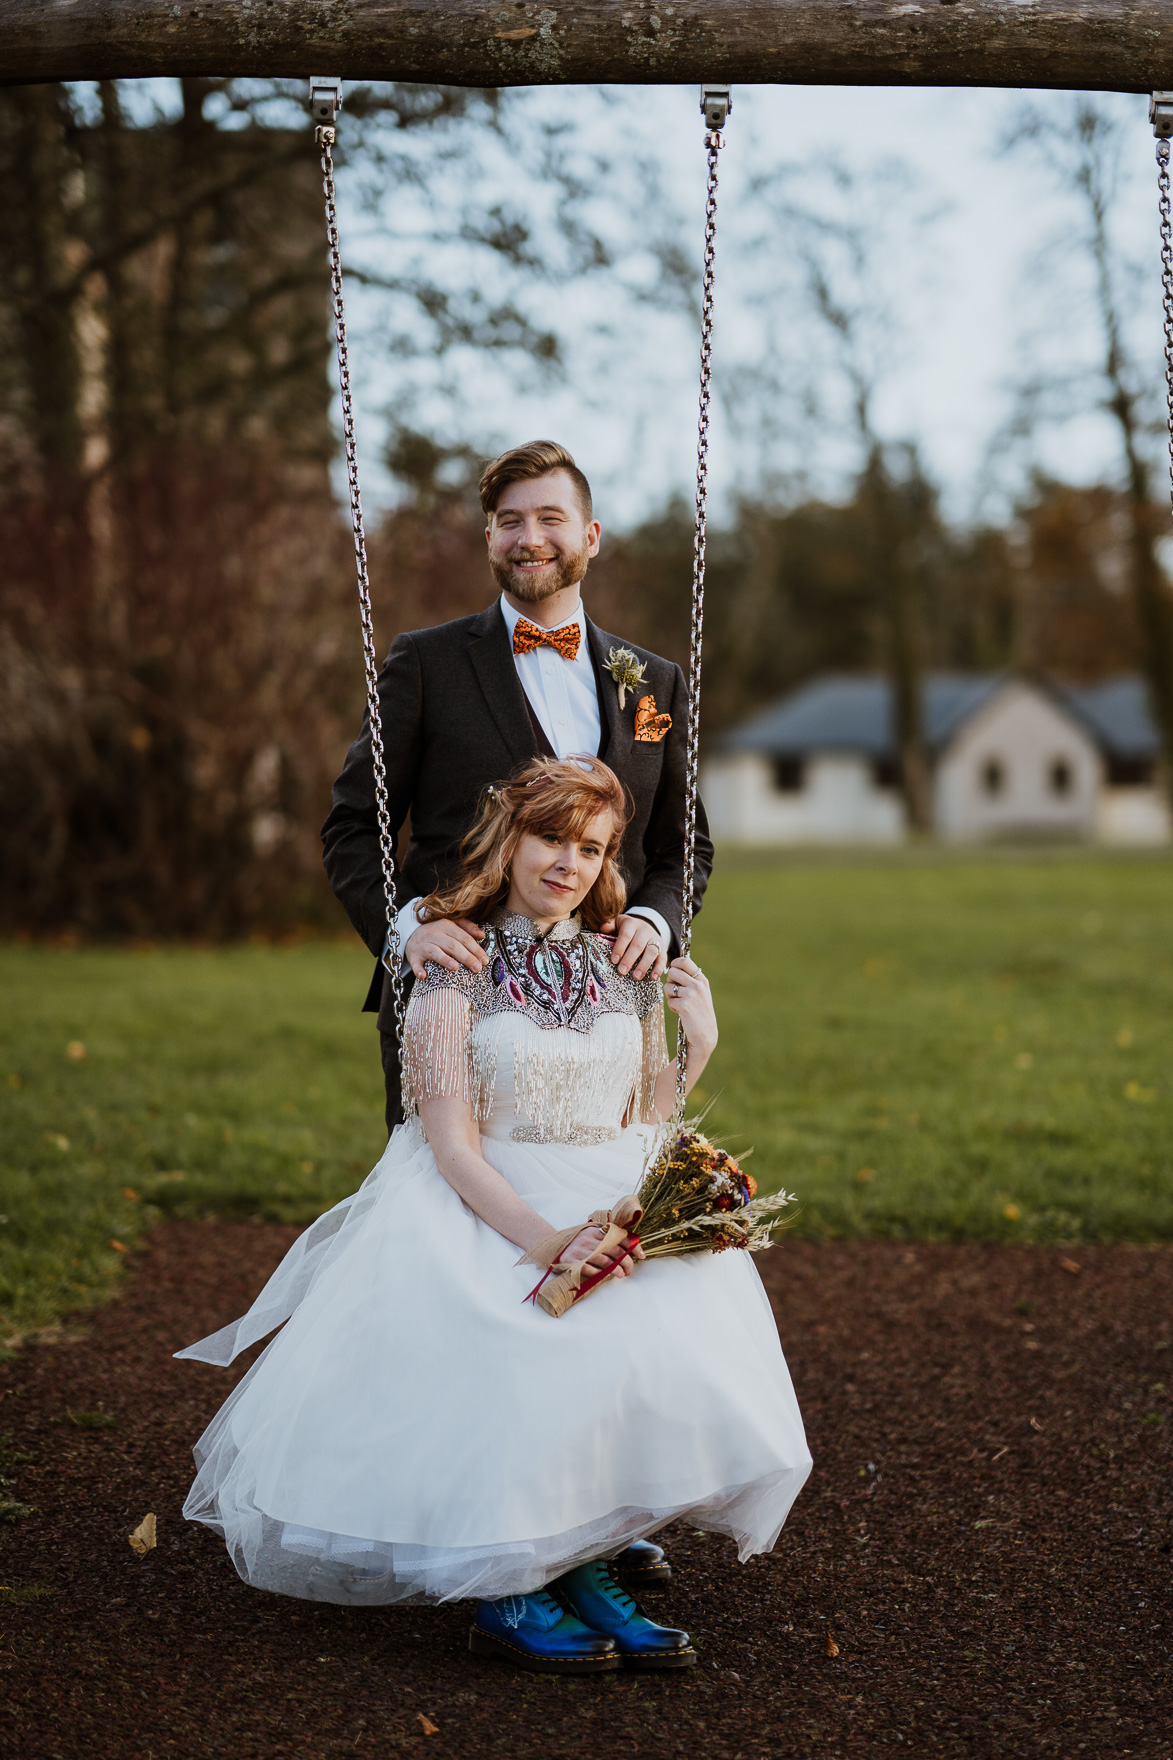 A person in a swing